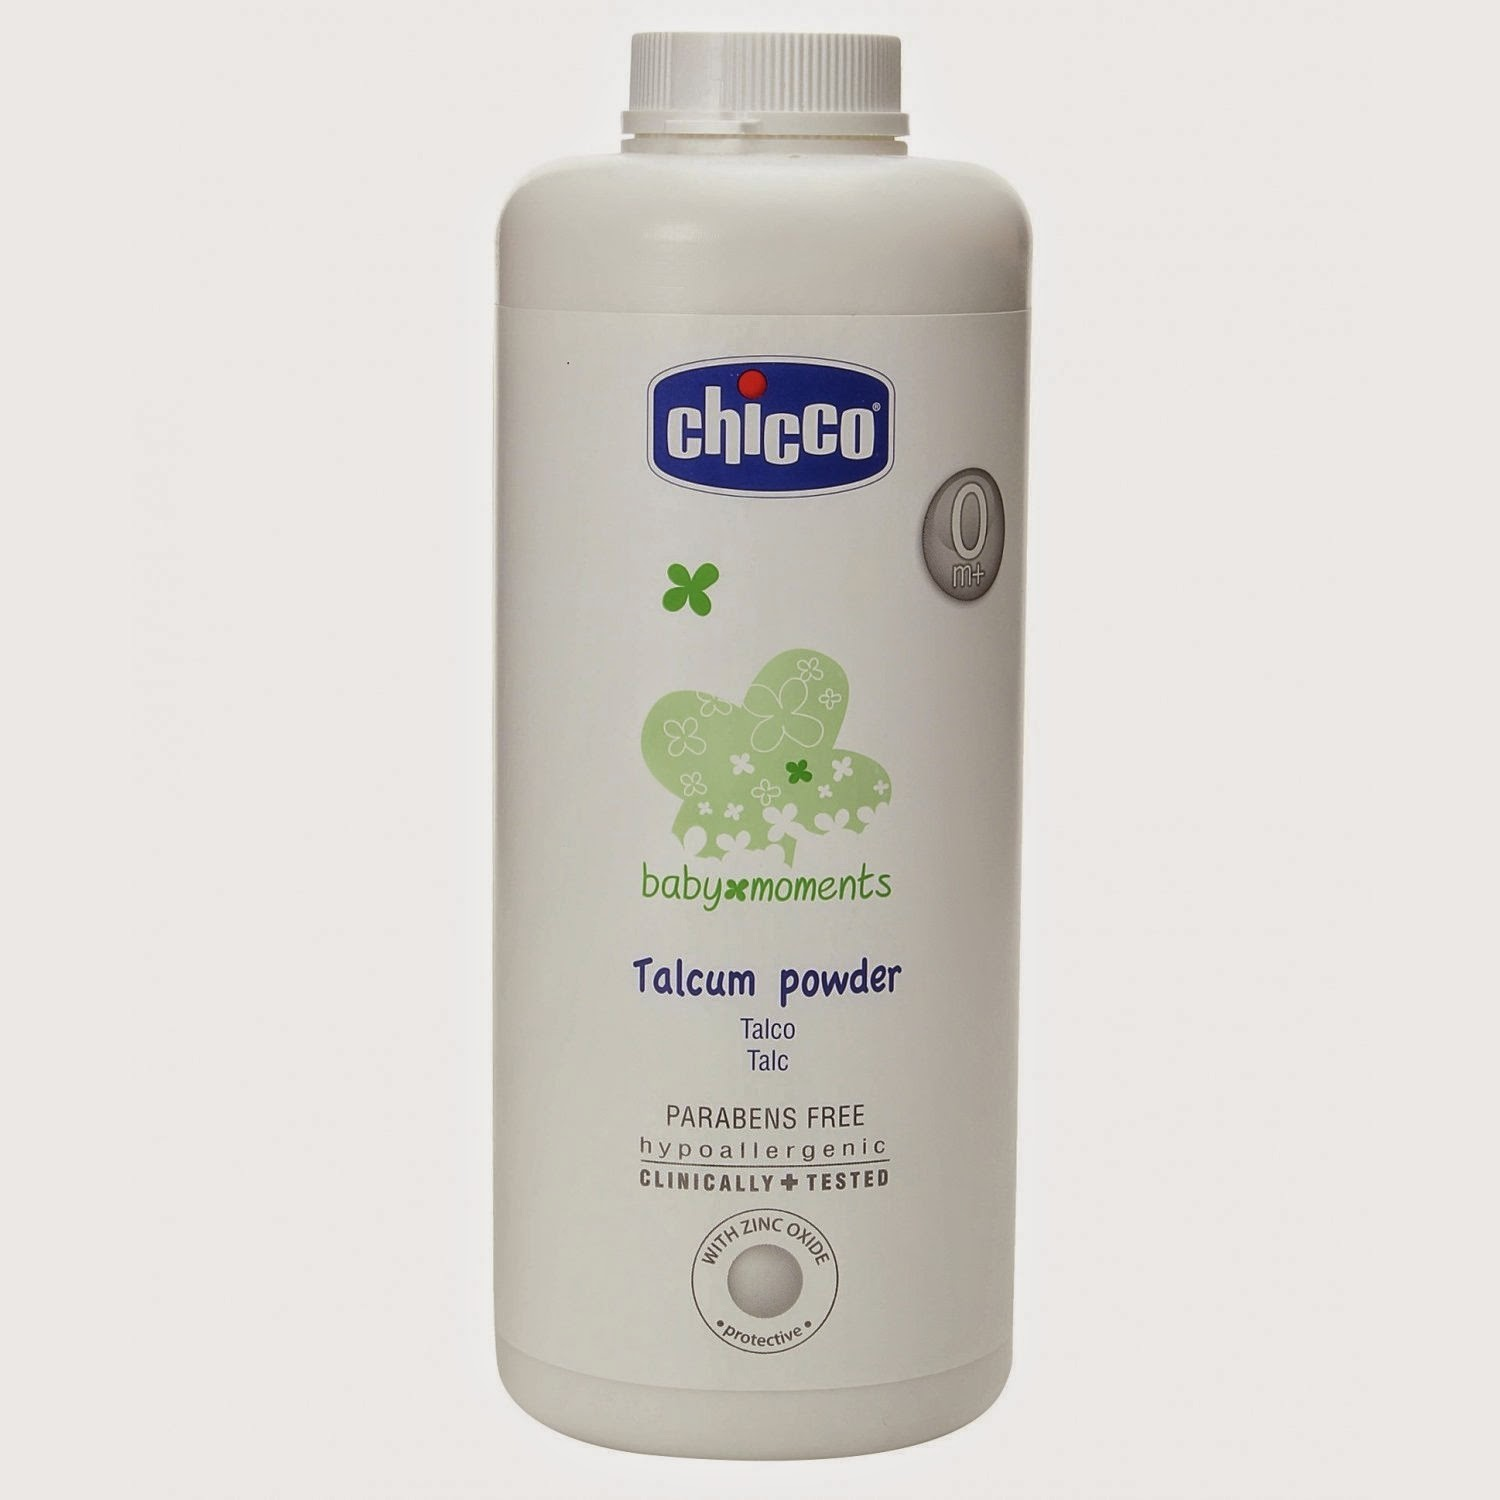 Buy Chicco Talcum Powder 150gm Rs. 100 only at Amazon.